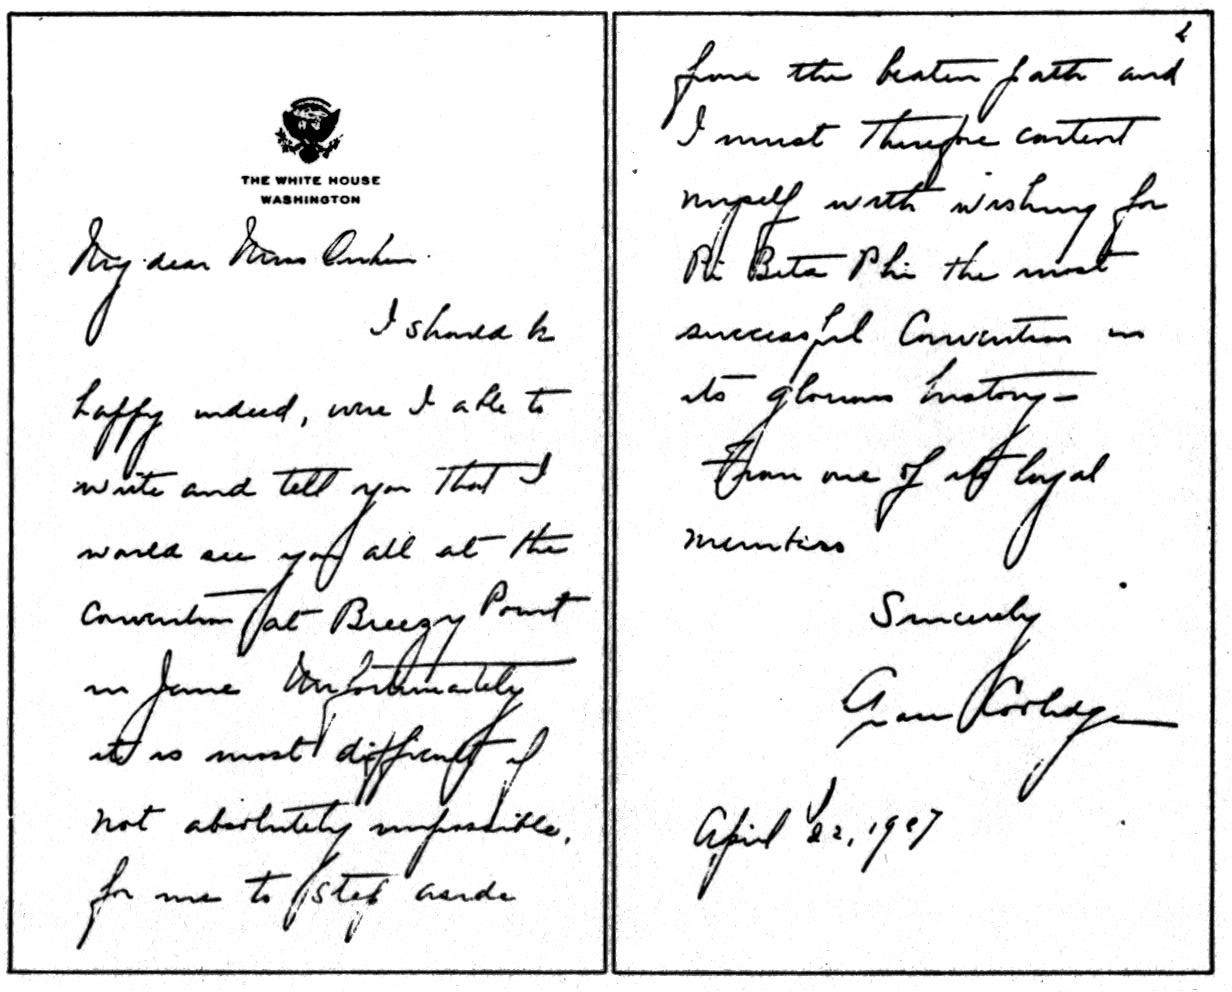 Letter from Grace Coolidge